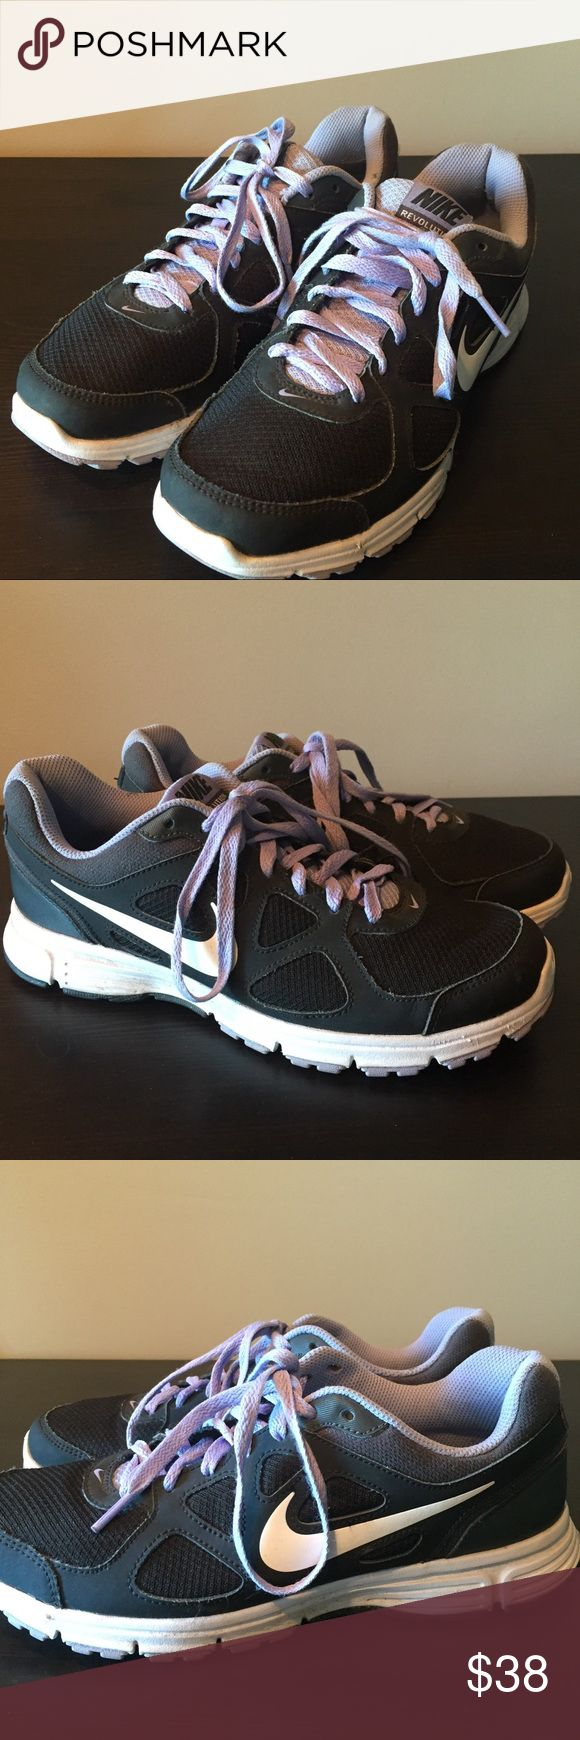 Nike Revolution 2 running shoes size 9 Almost new Nike Revolutions, pretty lilac purple and black. Worn just a handful of times. Nike Shoes Sneakers